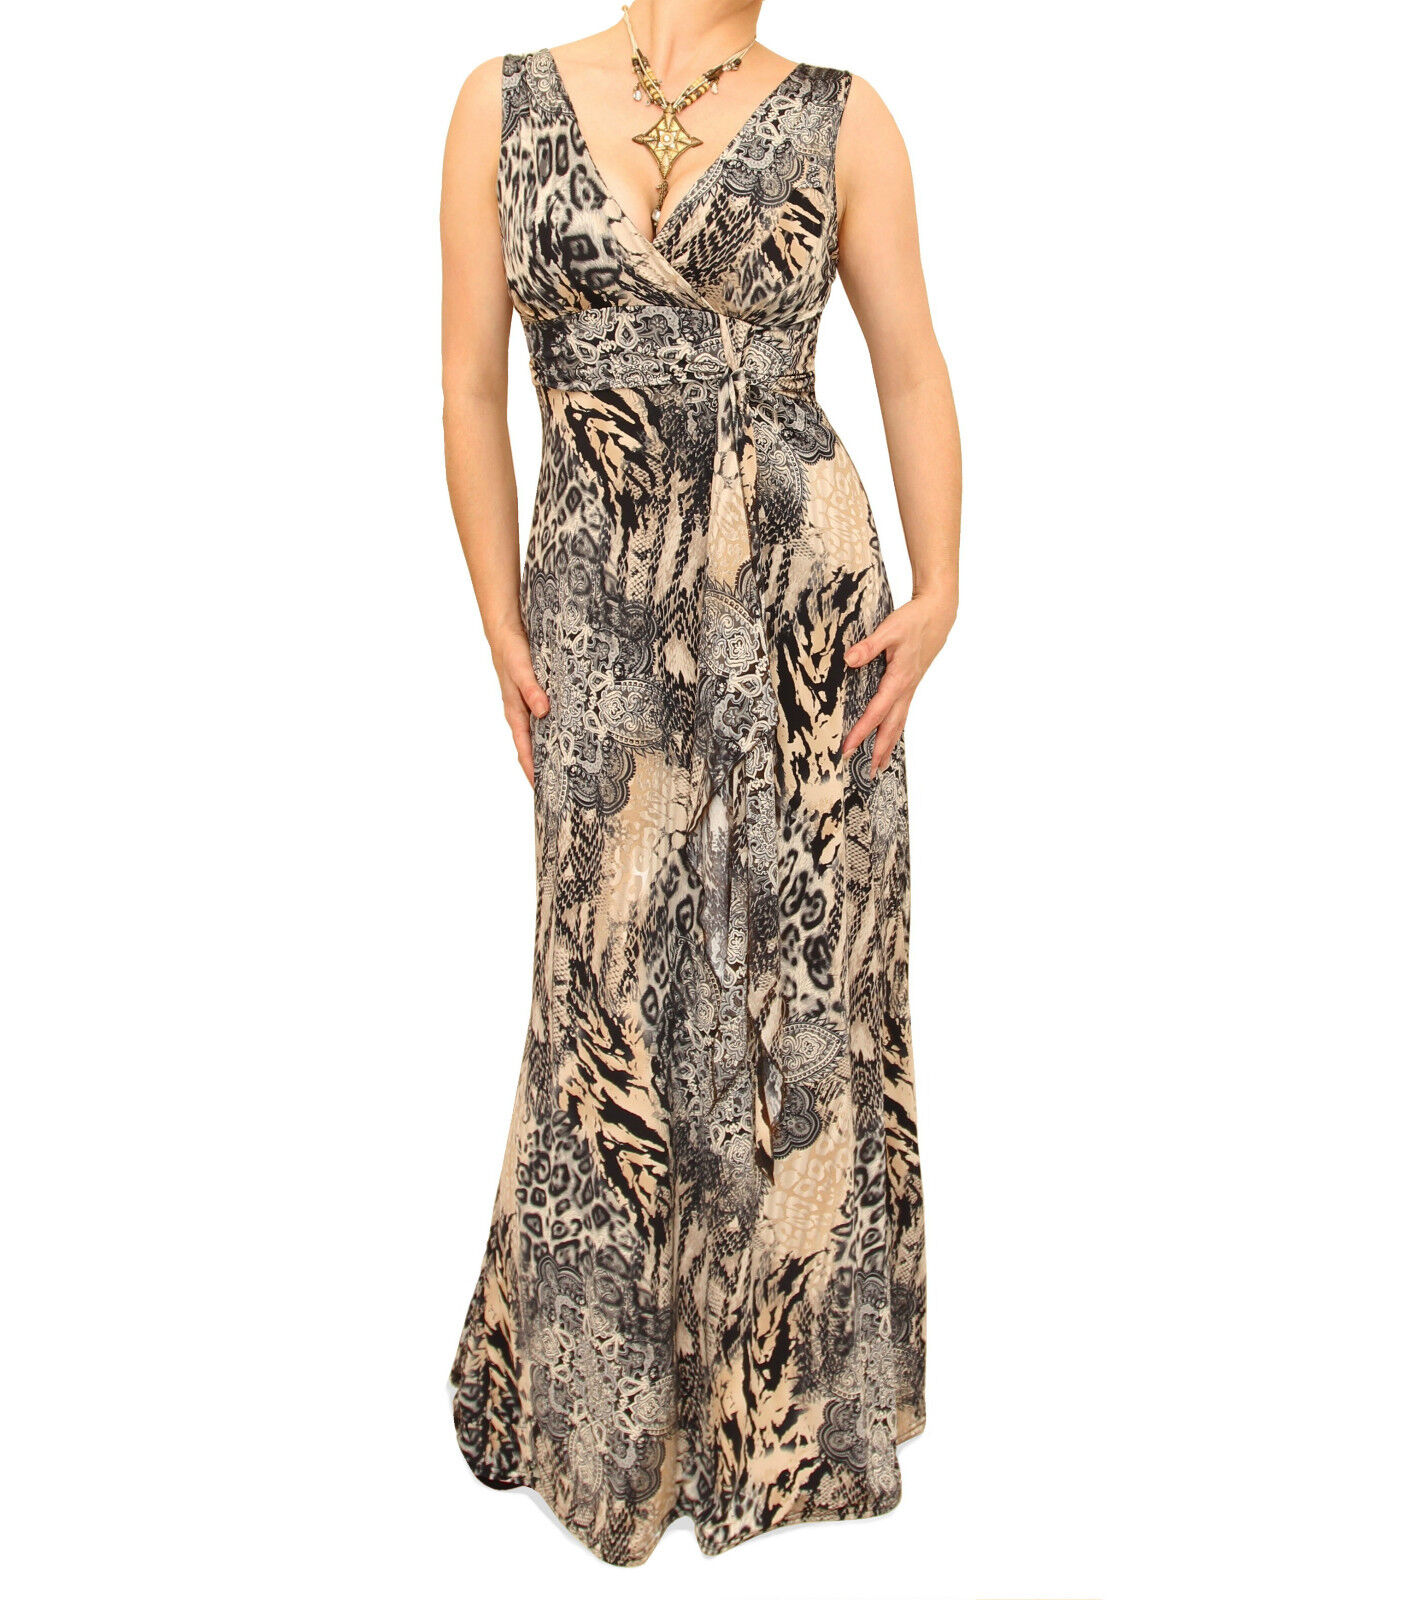 New Animal Print Full Length Maxi Dress